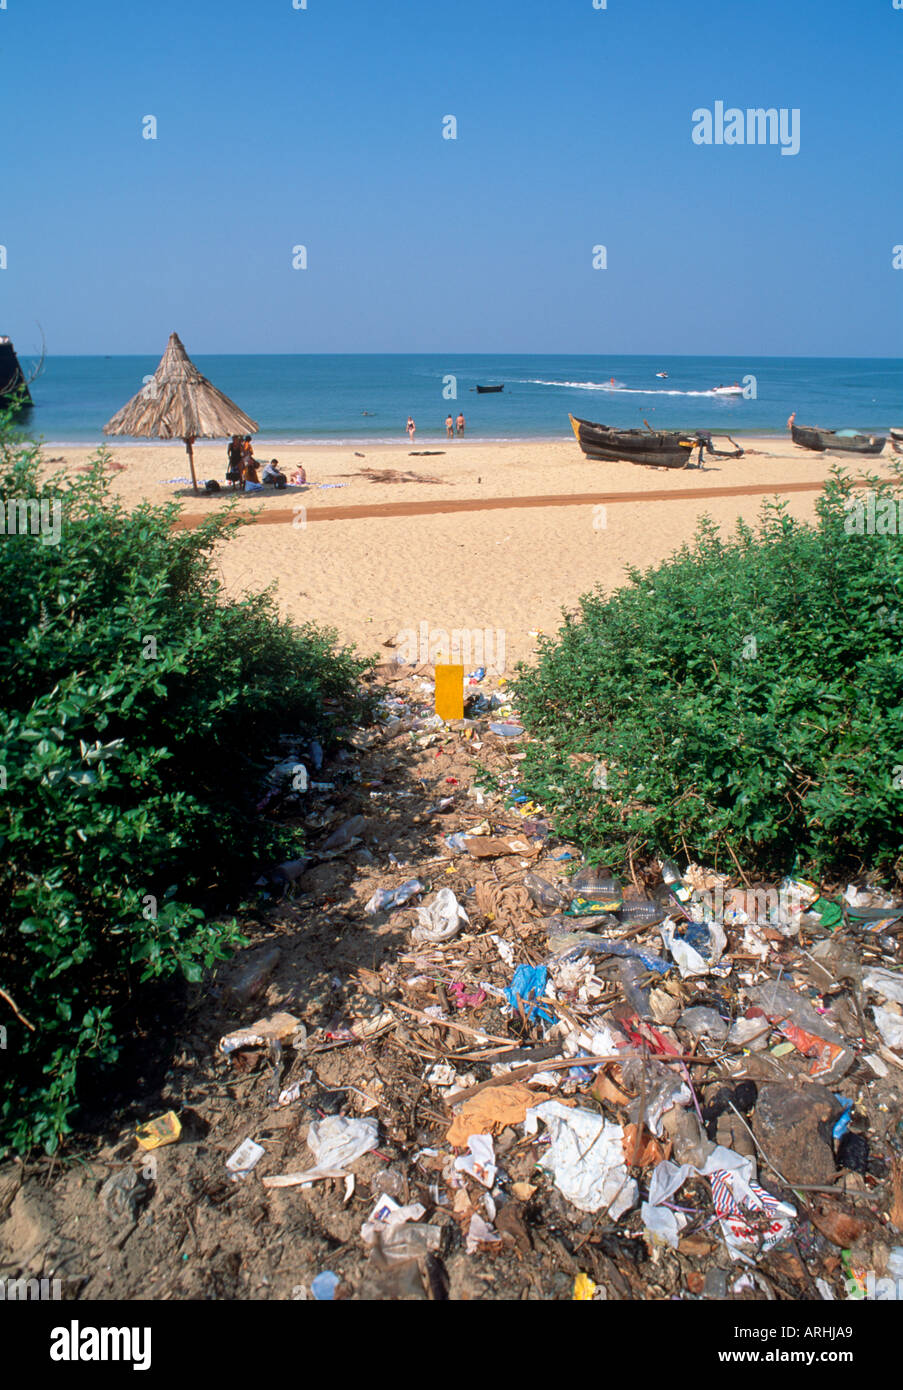 Typical dumping of rubbish, Aguada Beach, North Goa, India - Stock Image